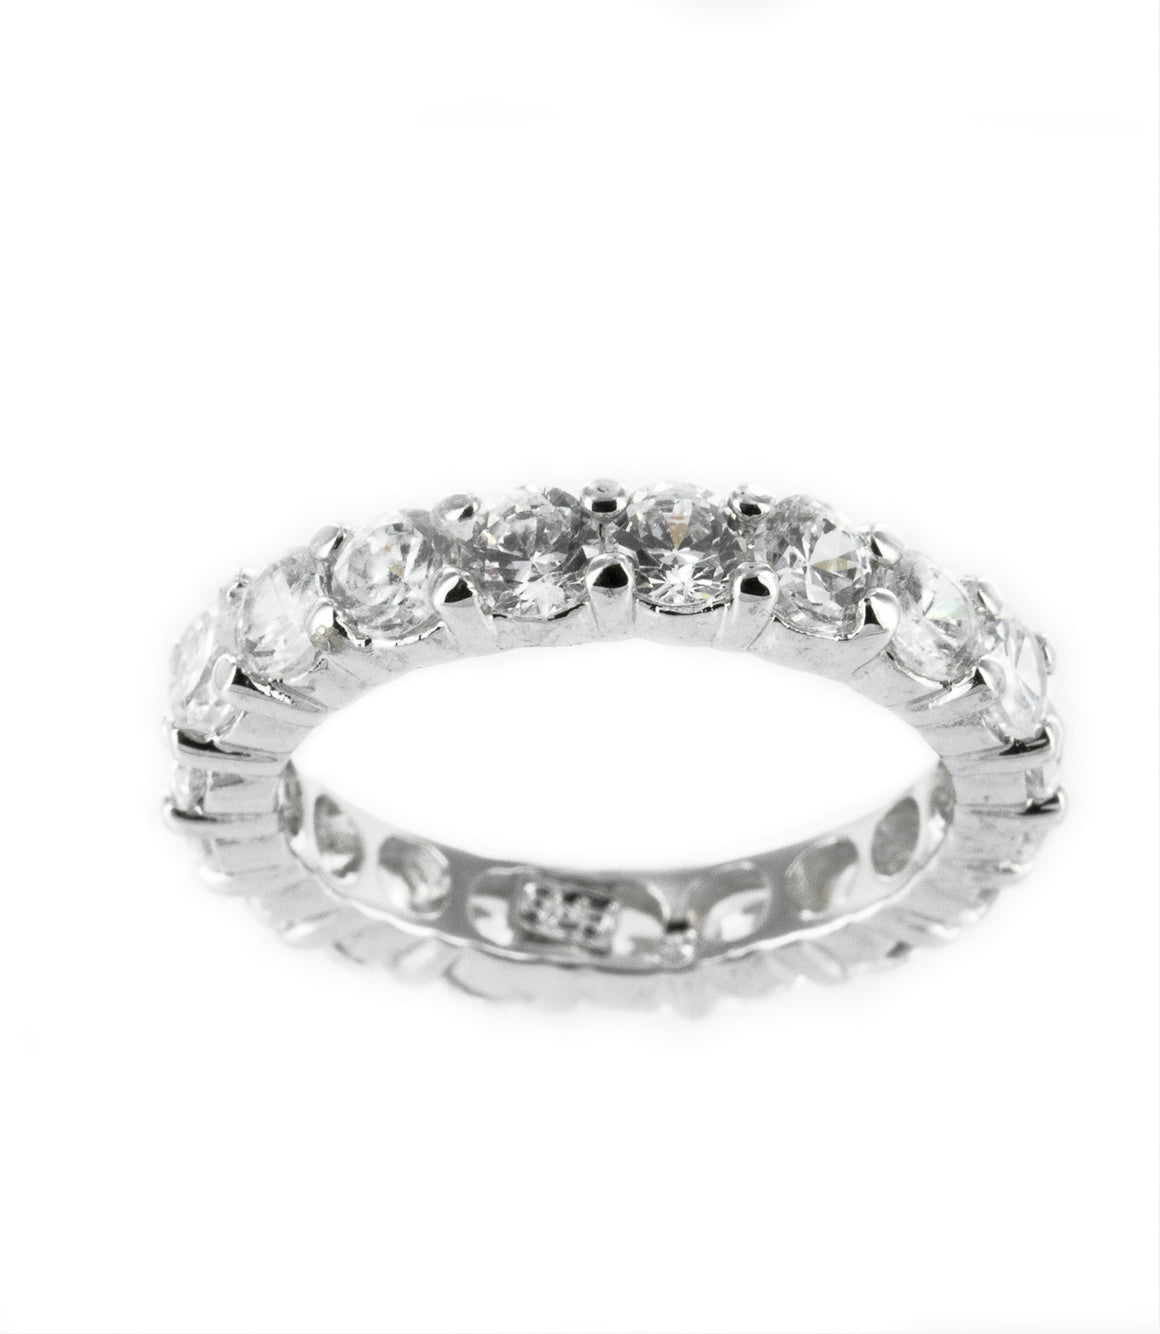 Cubic zirconia band sterling silver ring.